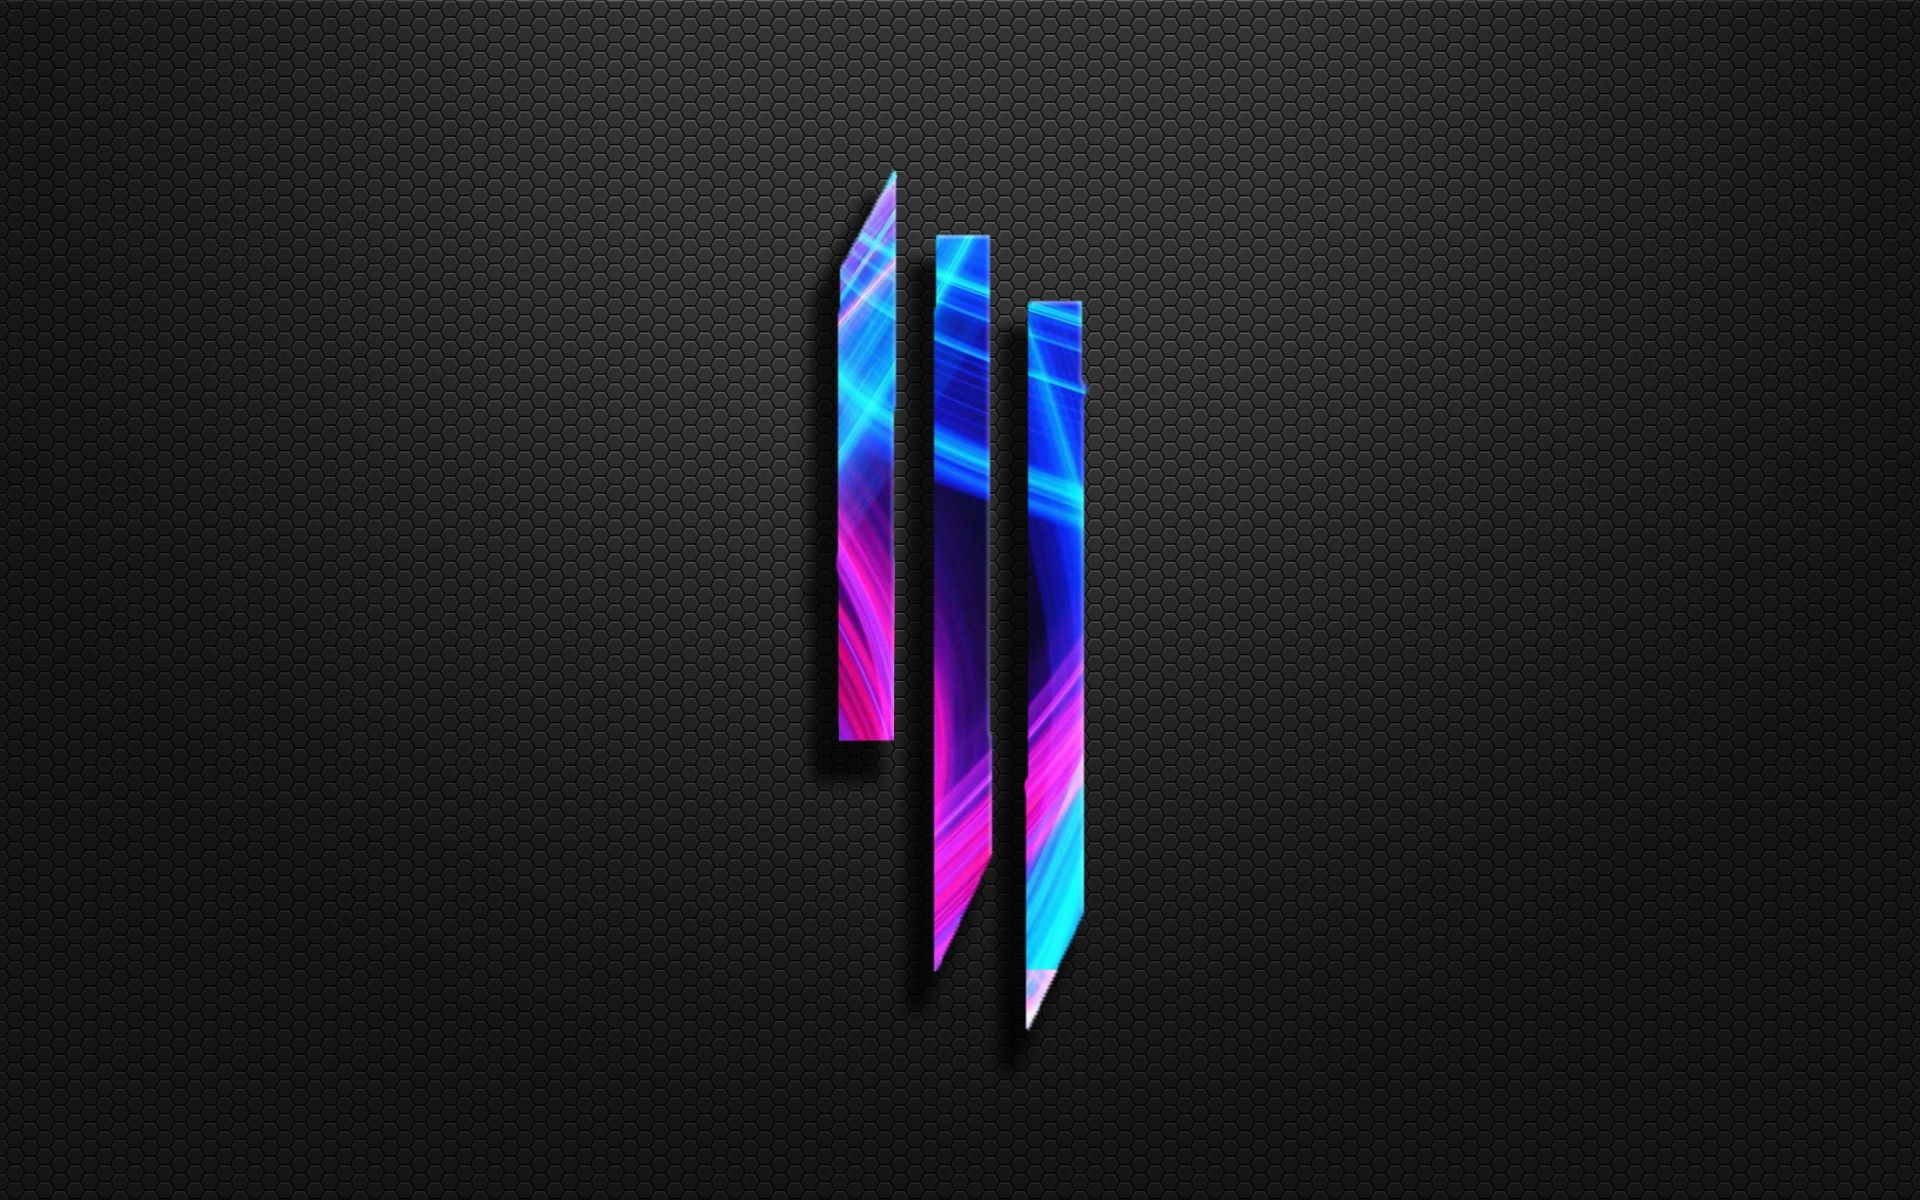 Sick Wallpapers For Iphone 6 Roccat Wallpapers 79 Images